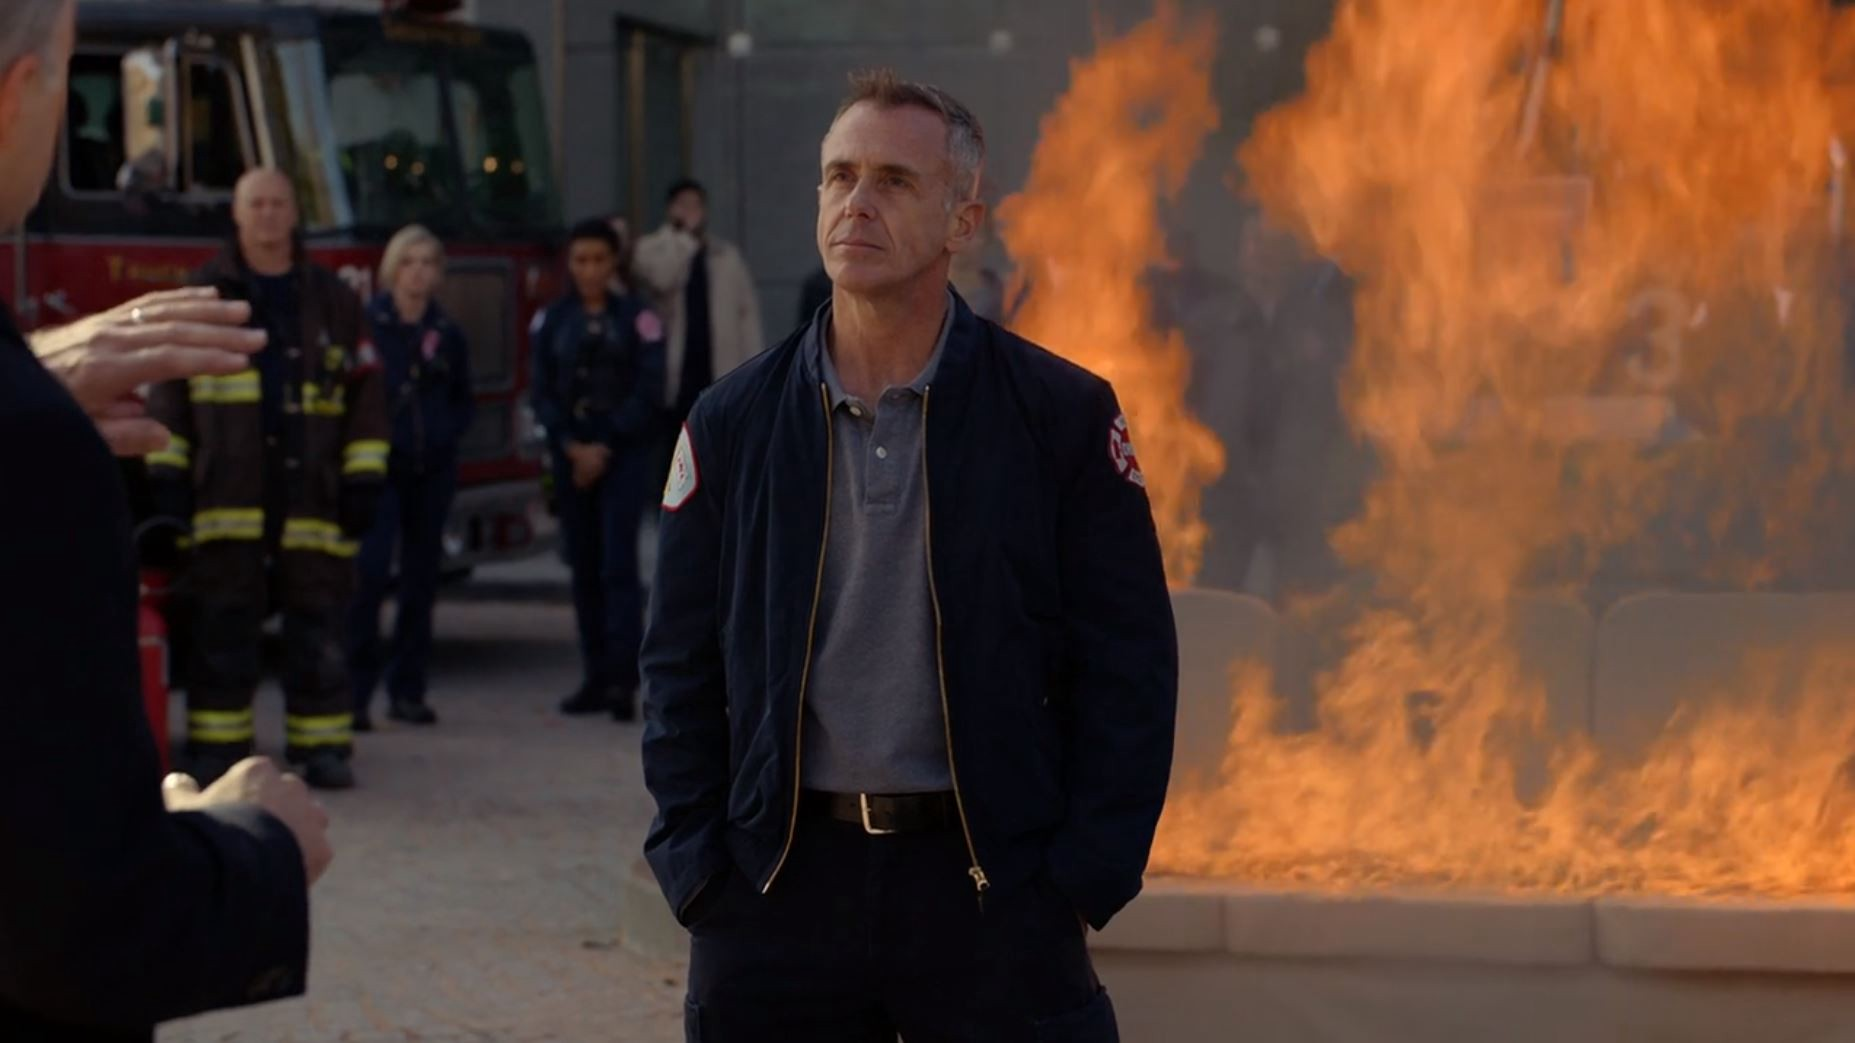 Chicago Fire S08 E08 Seeing Is Believing Recap